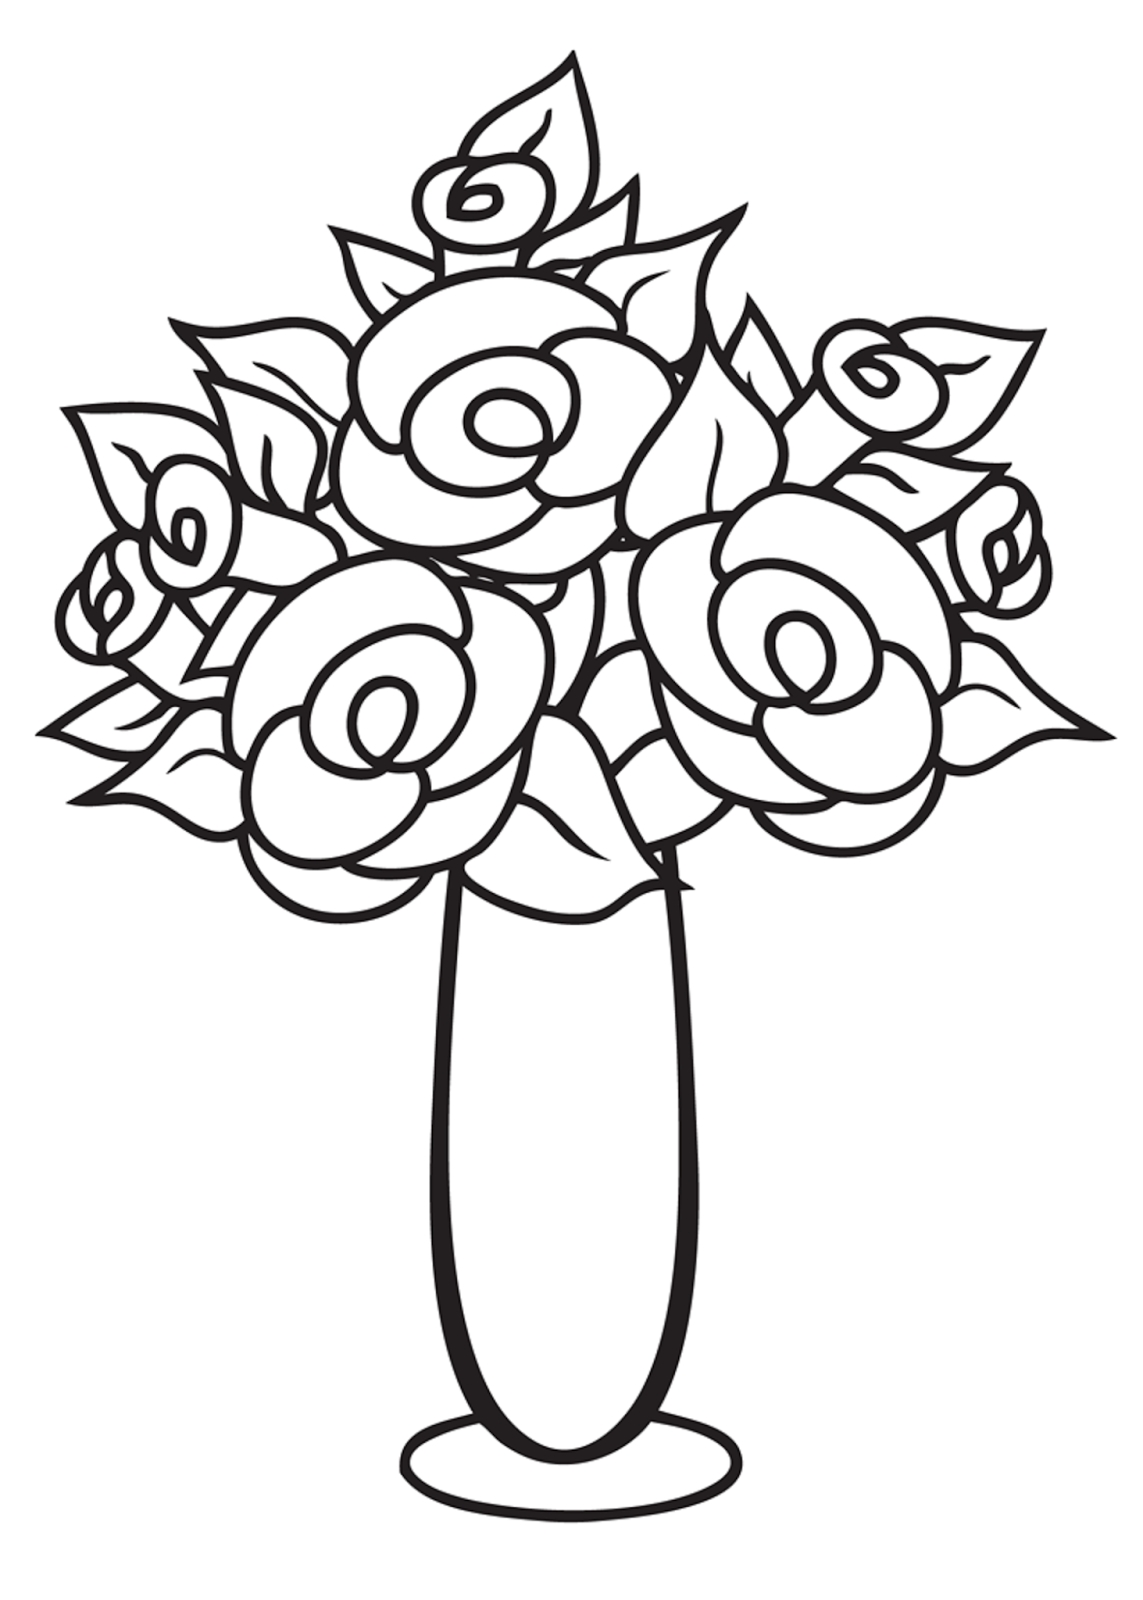 1143x1600 Vase With Flowers Drawings